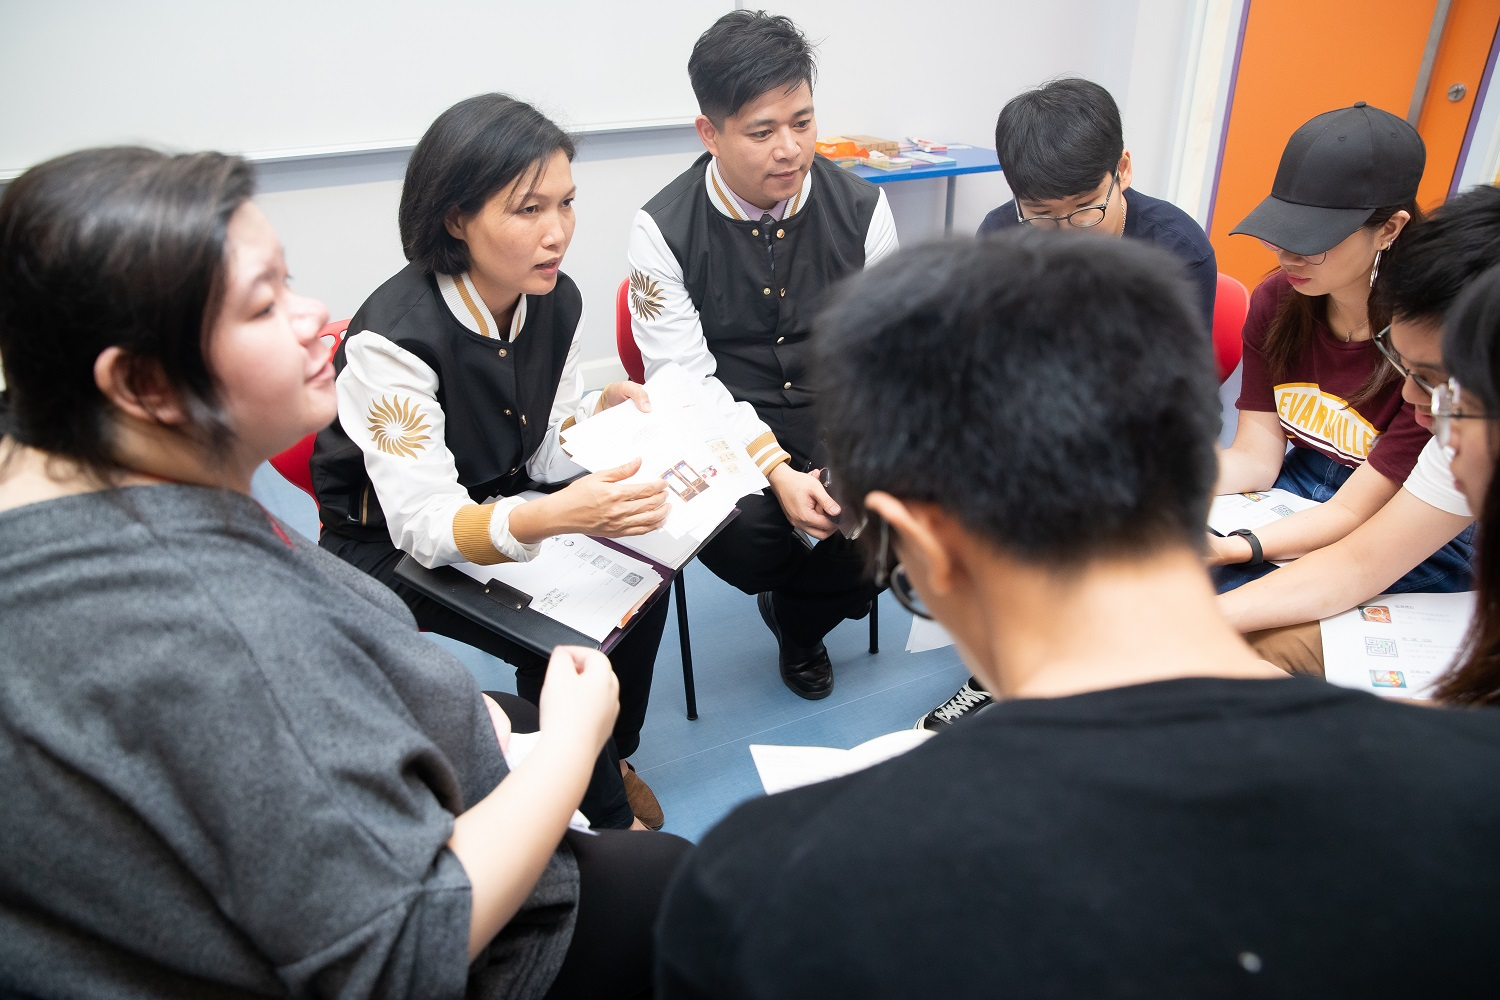 Sands China's Responsible Gaming Ambassadors speak with students